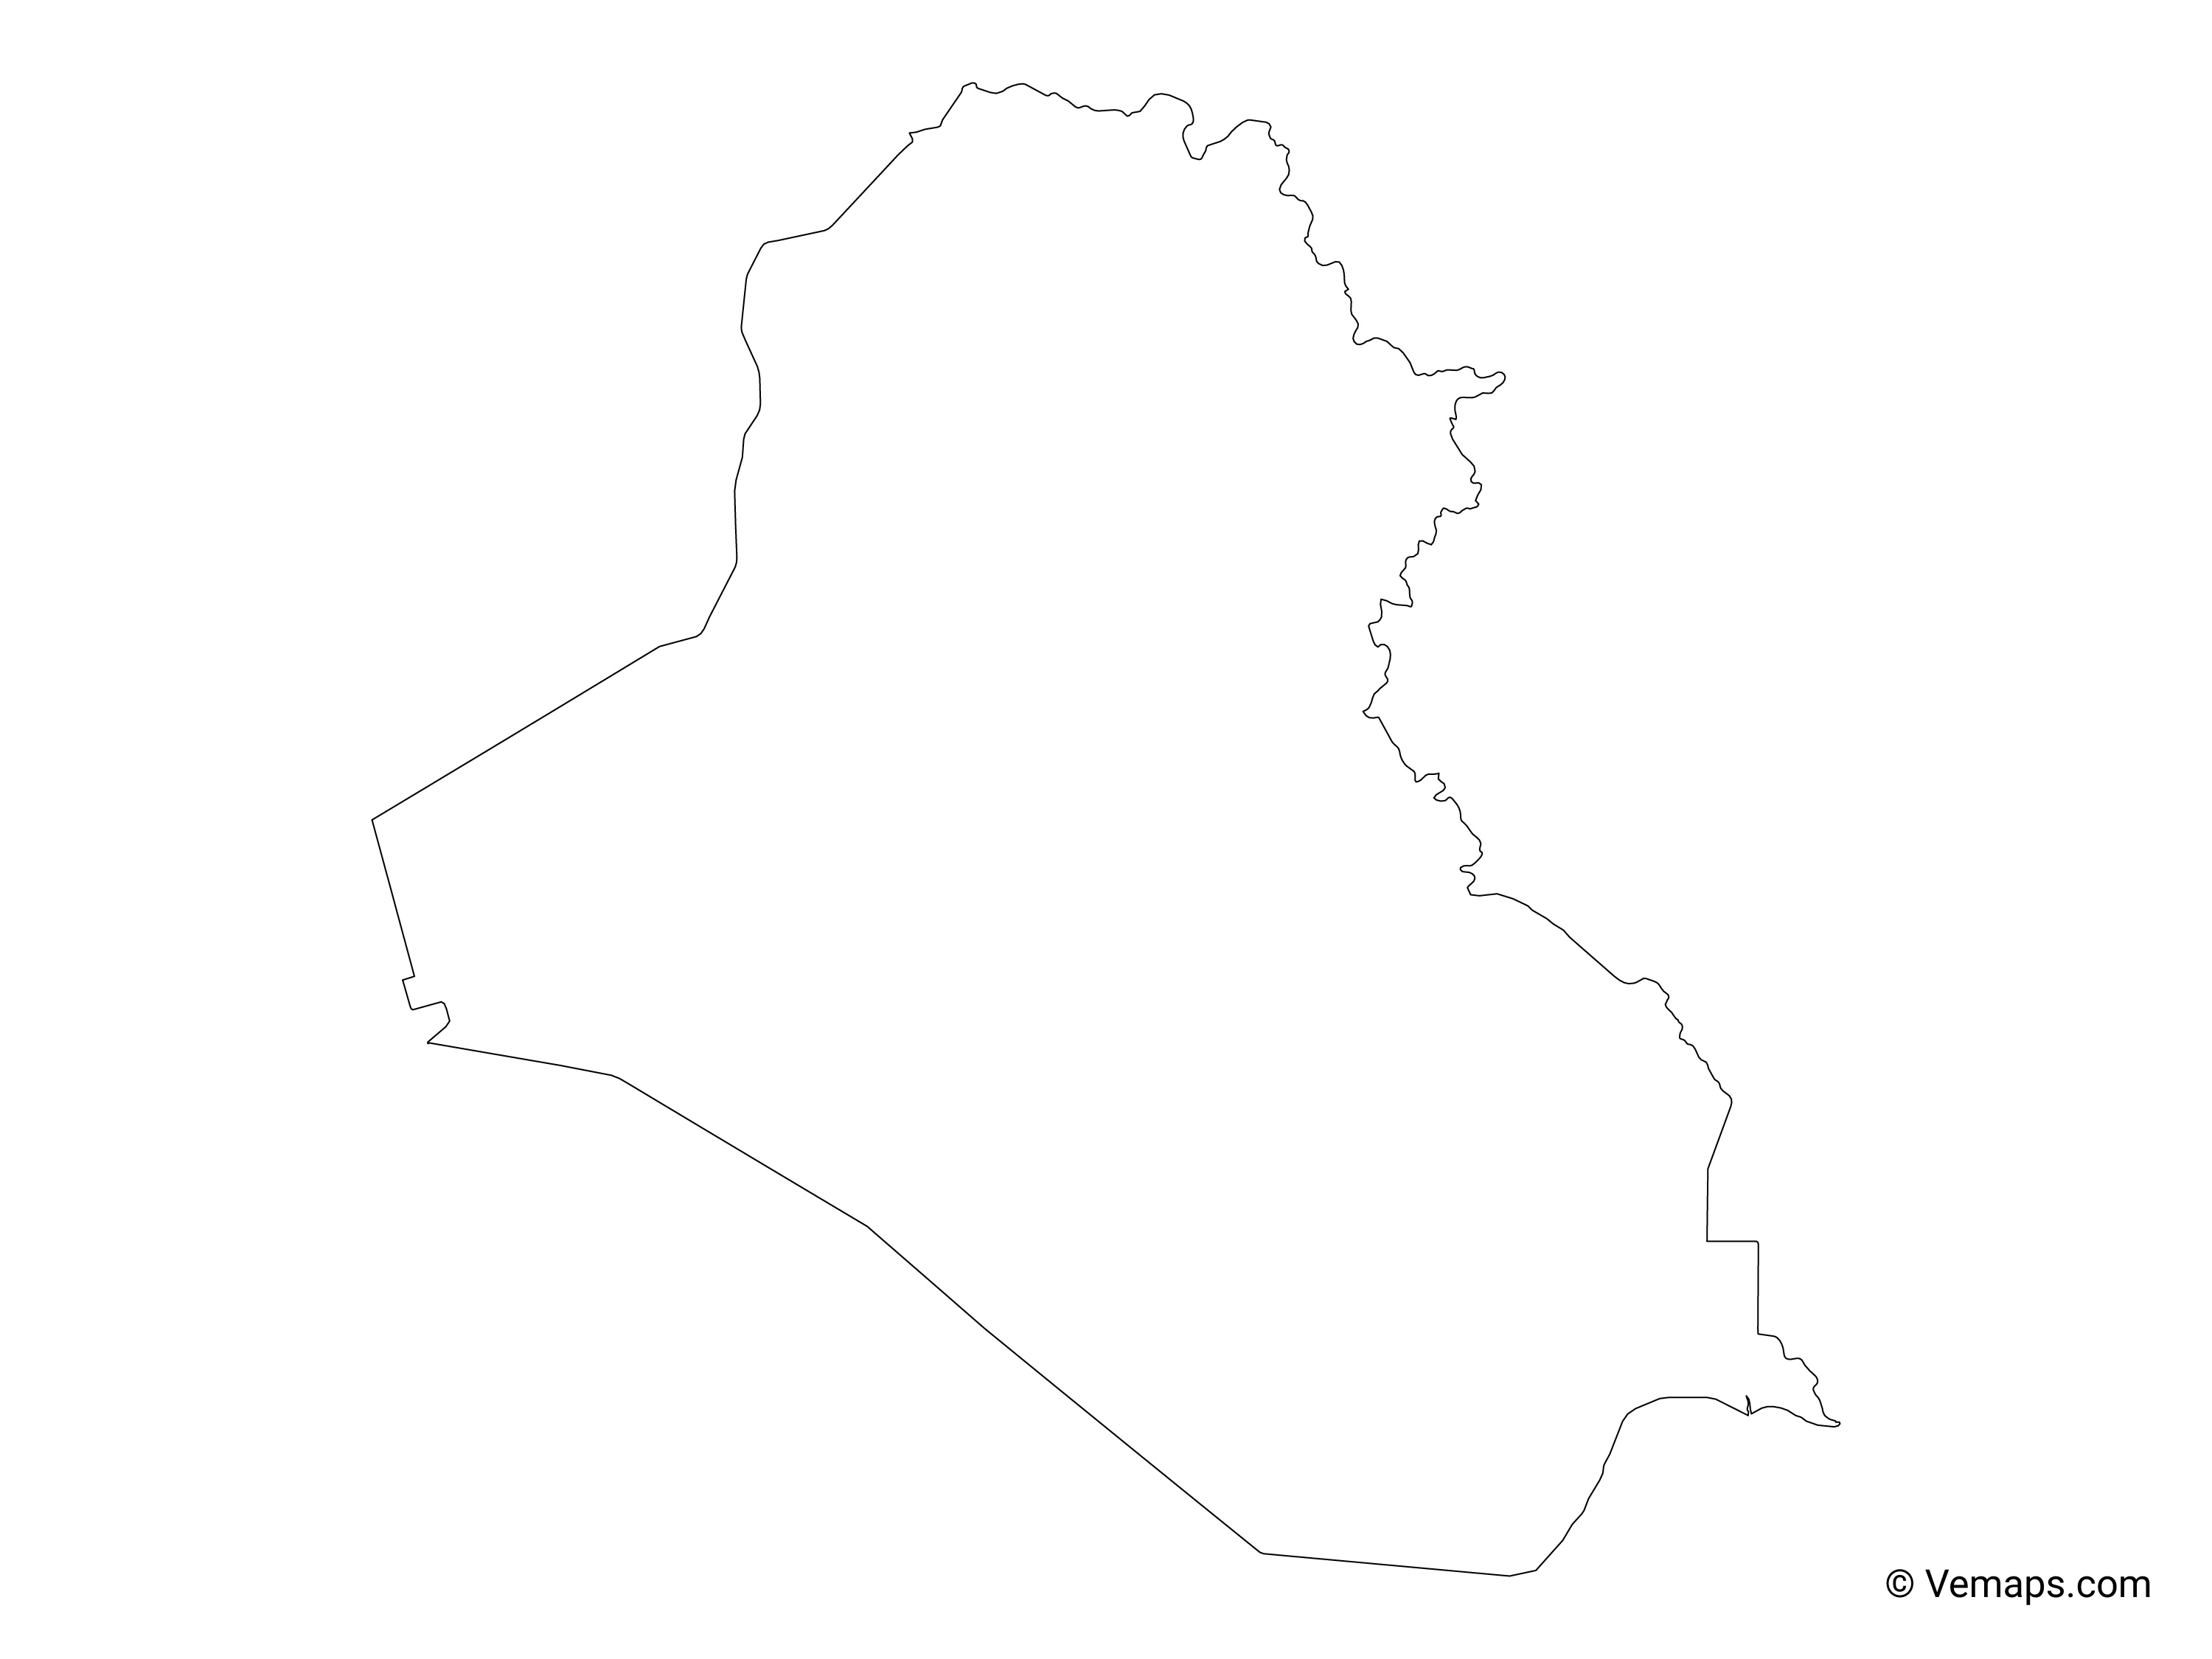 Outline Map of Iraq | Free Vector Maps